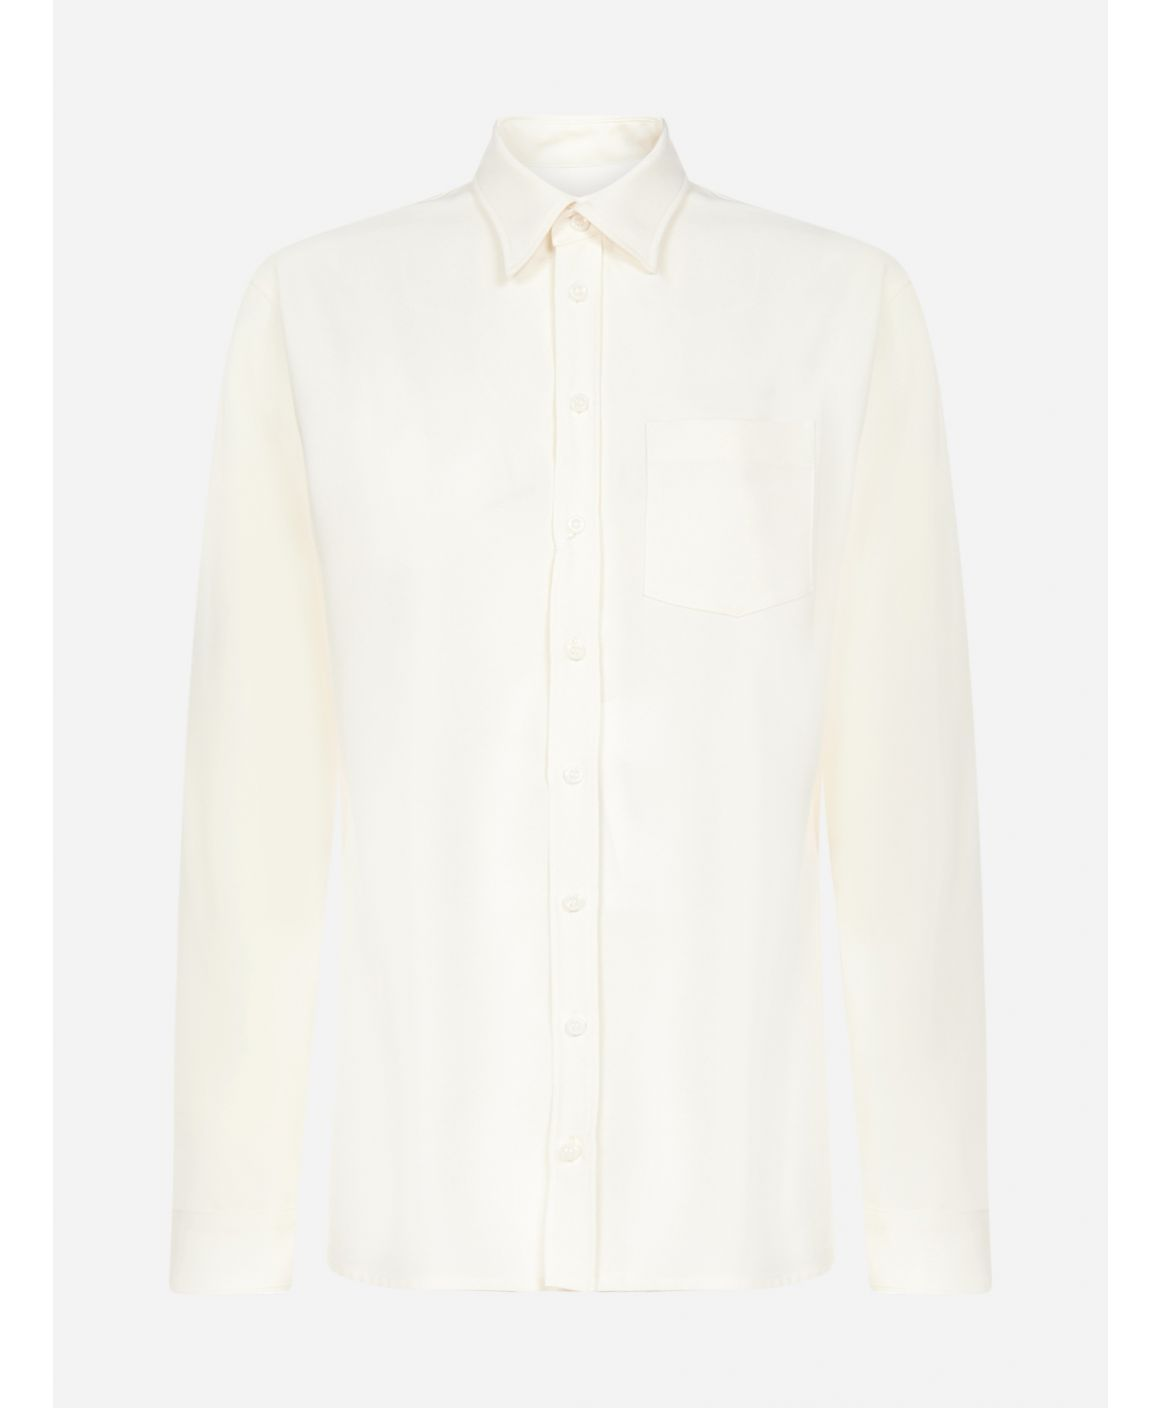 Crepe top-shirt